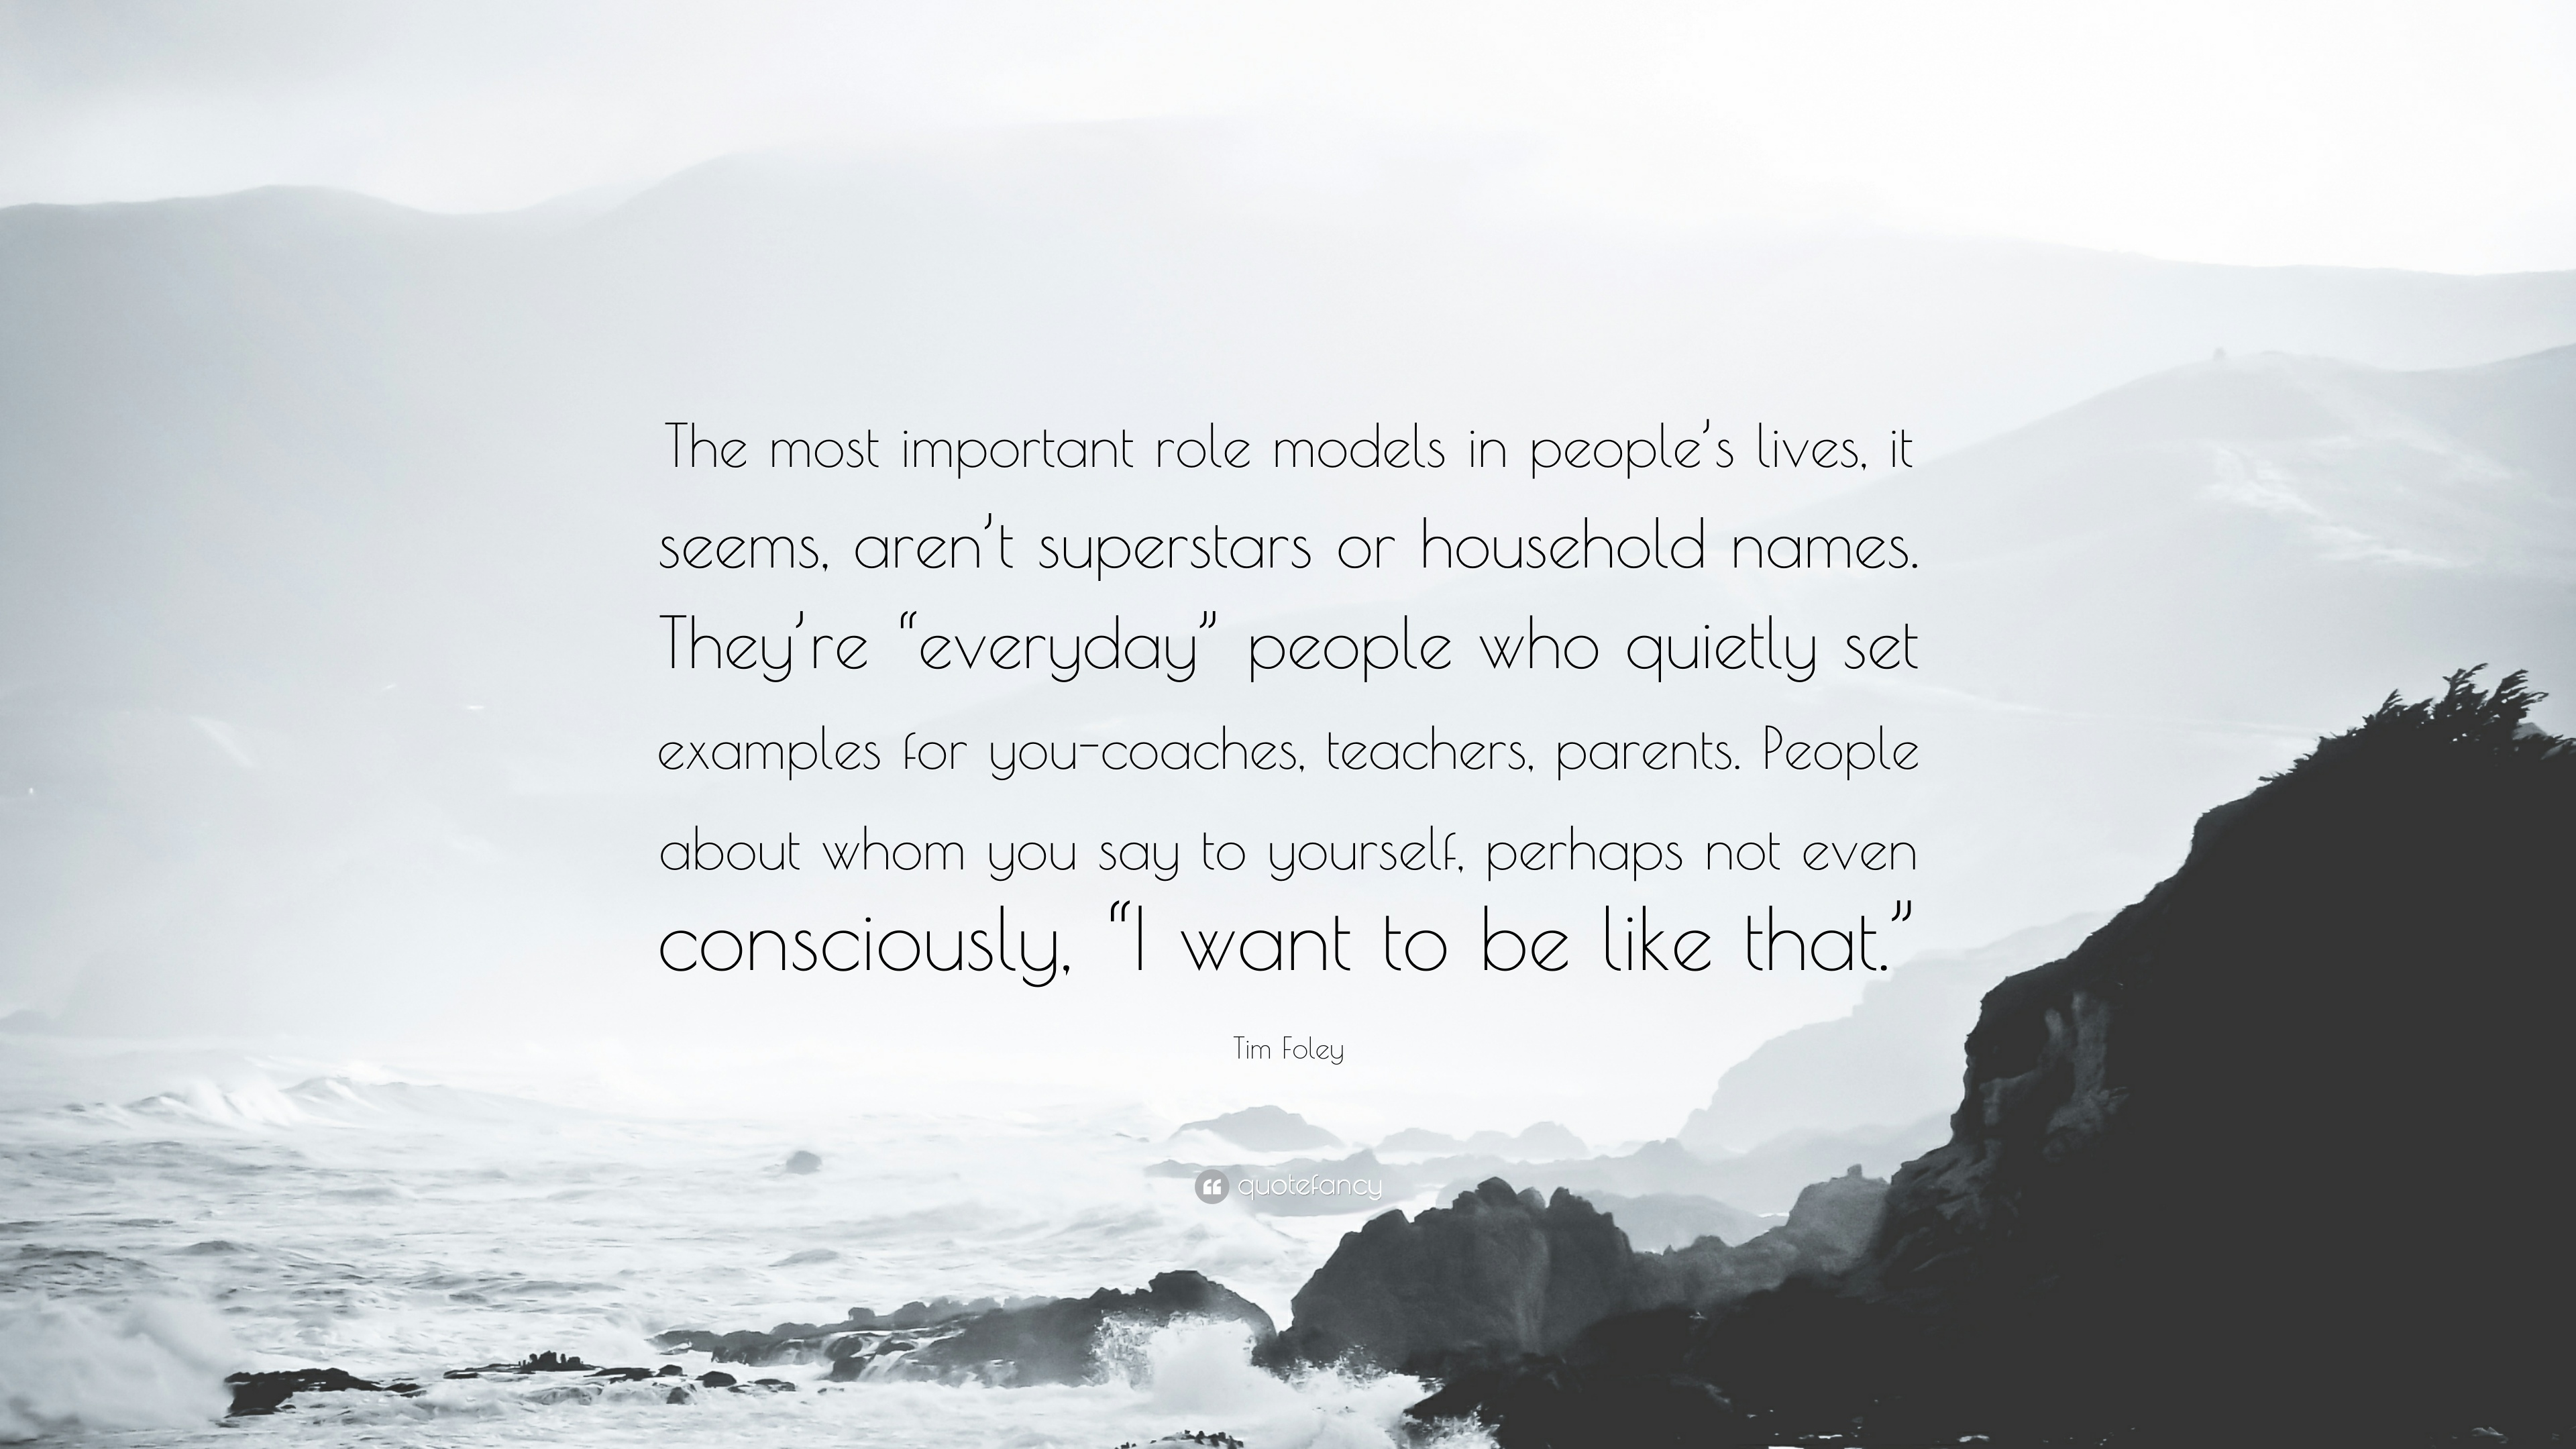 tim foley quote the most important role models in people s lives